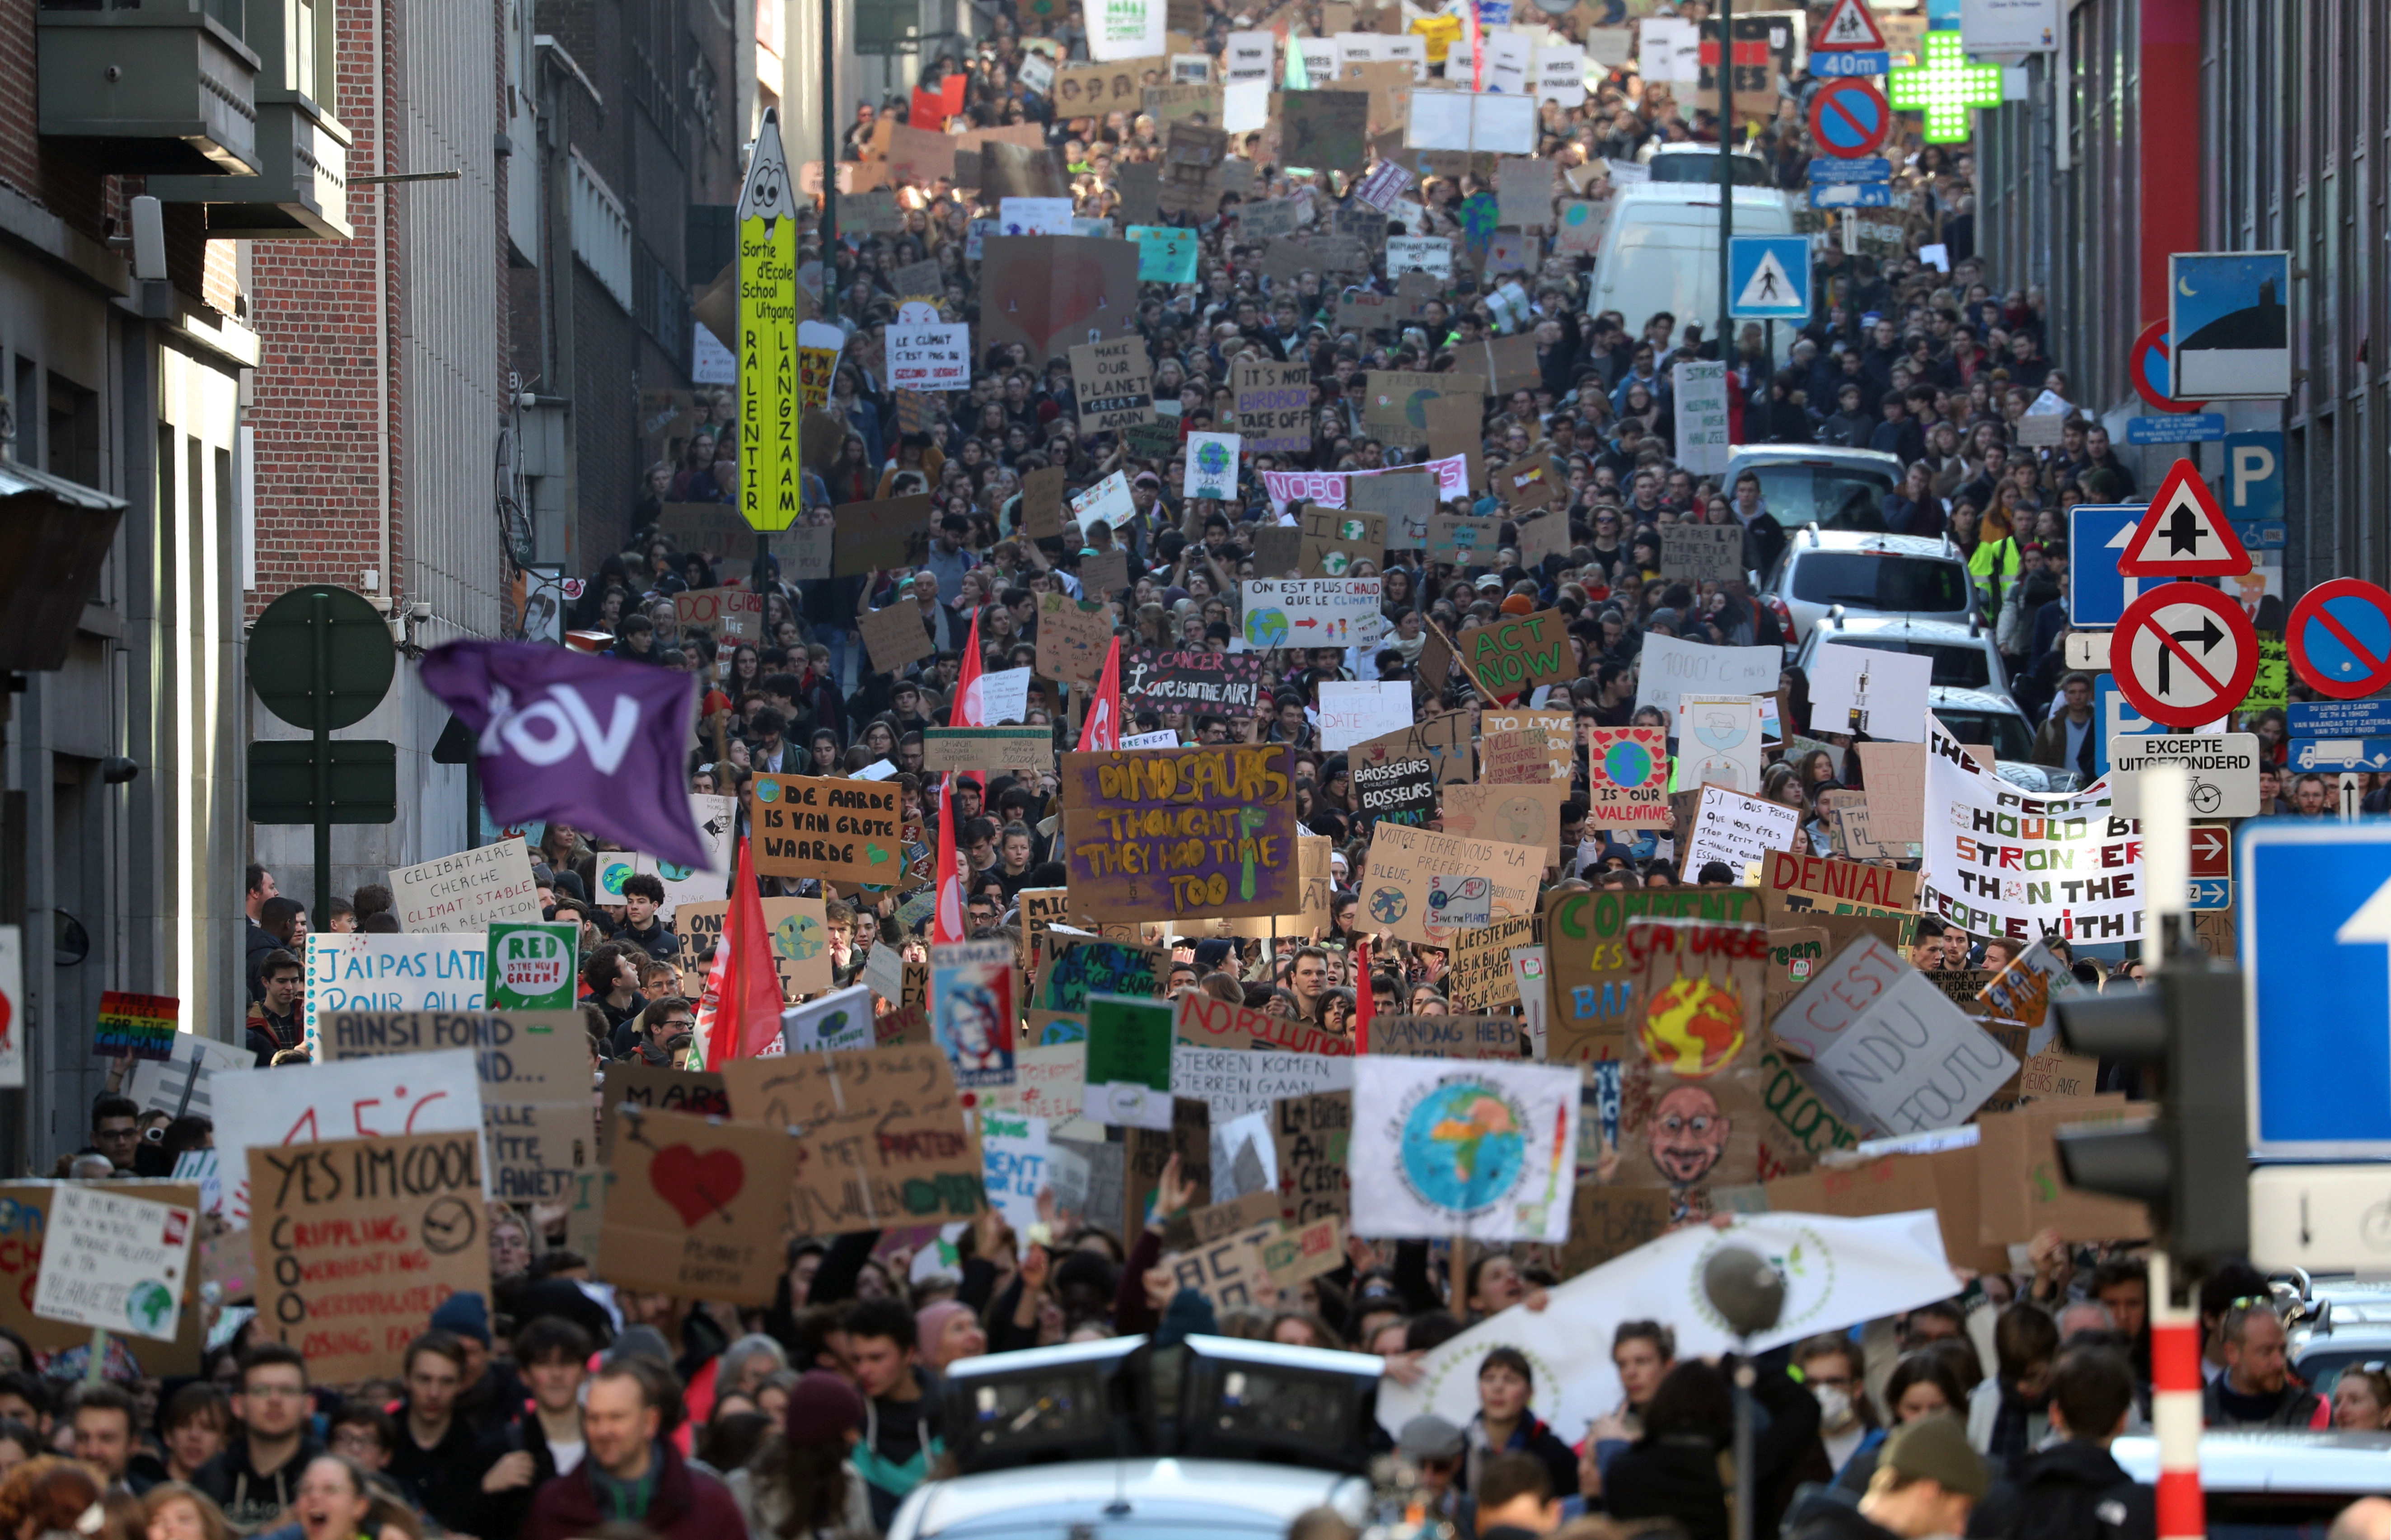 Belgian students claim for urgent measures to combat climate change during a demonstration in central Brussels